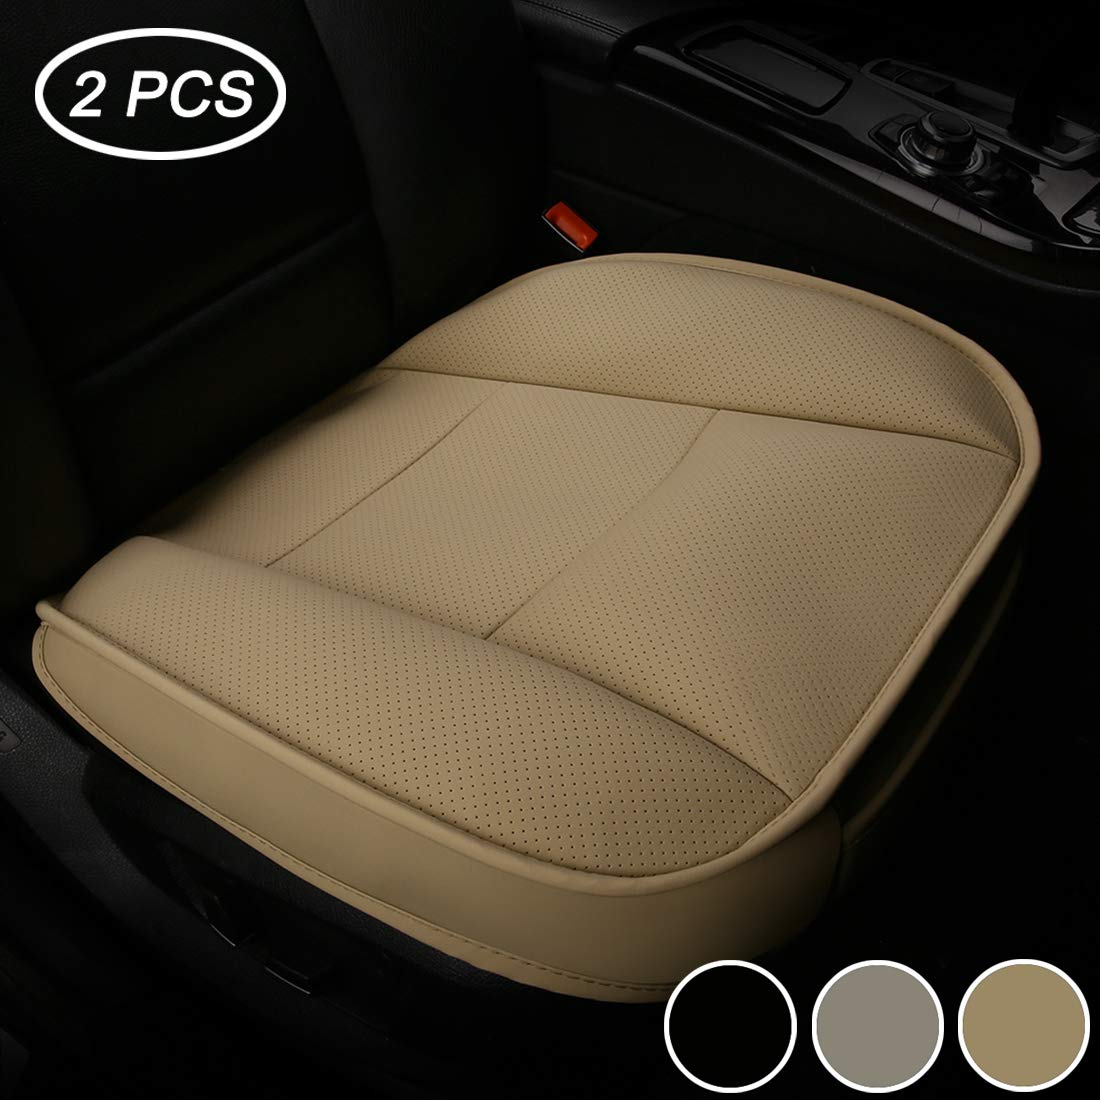 LUOLLOVE Luxury PU Leather Car Seat Covers Pads Universal for Front Seats, Soft Comfortable,Wrapping Edge Without Backrest,52 * 51 cm (2-Pack, Beige)